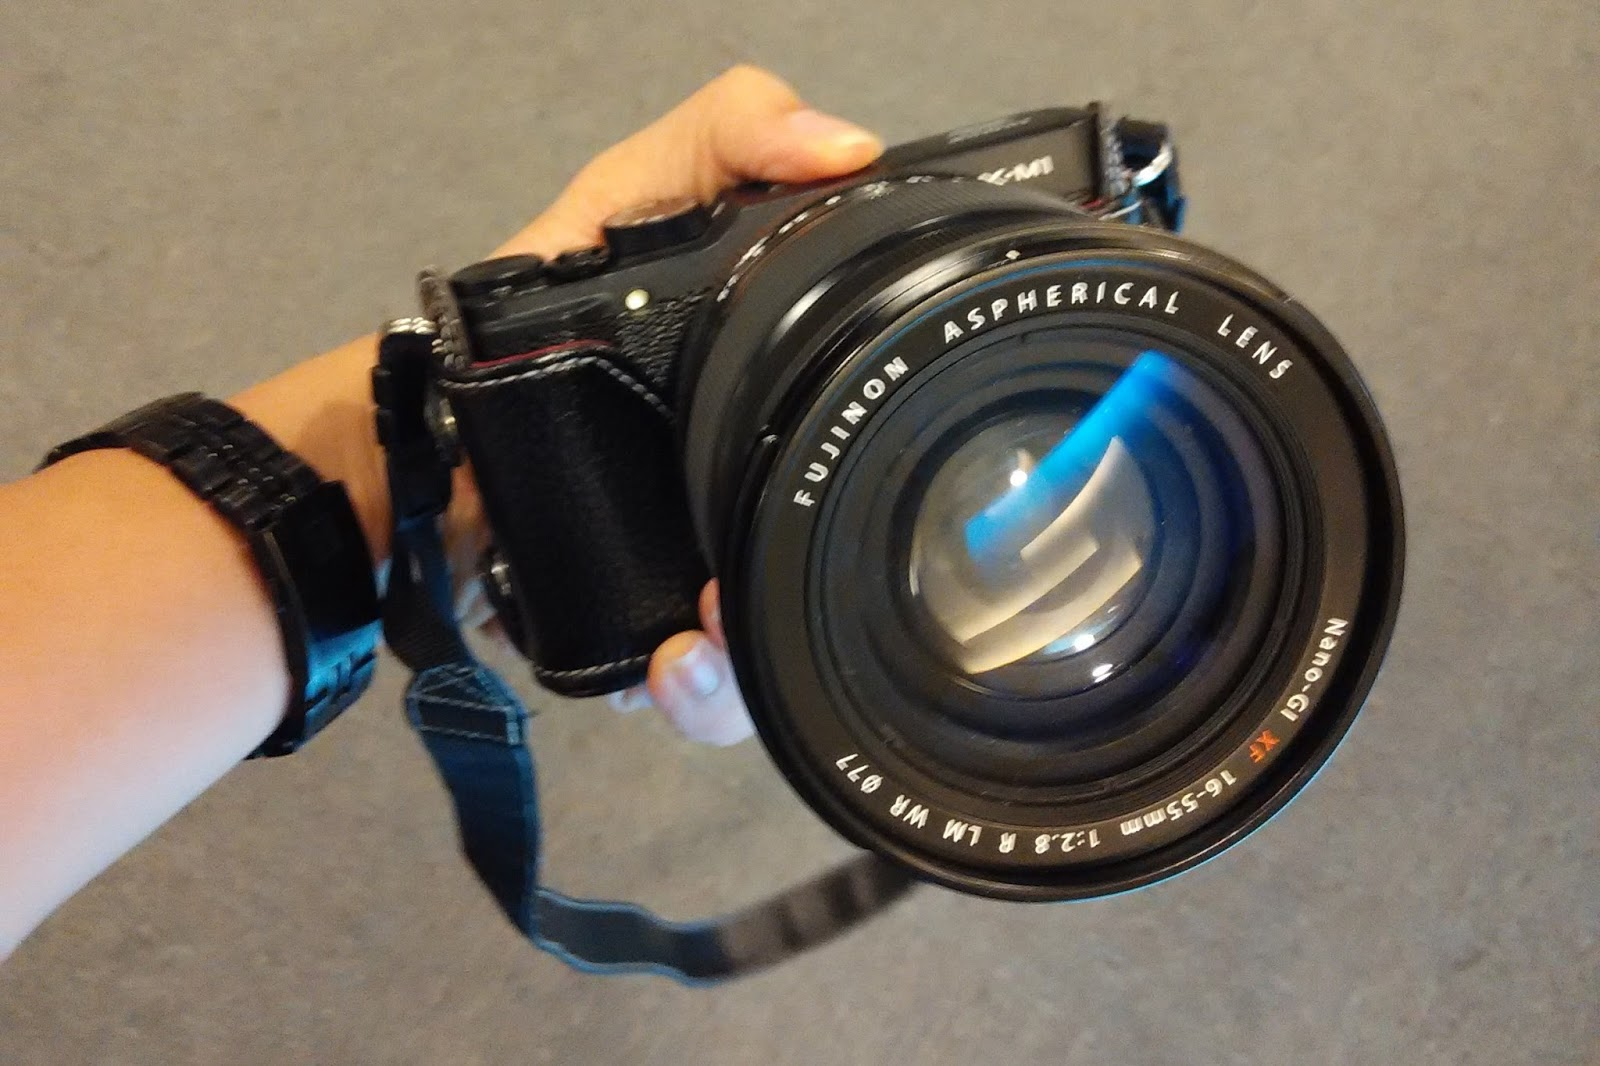 Fujifilm X M1 Review Upgrading From The X20 Using E3 Kit Xf 18 55mm F 28 4 R Lm Ois Silver 16 F28 Front On My